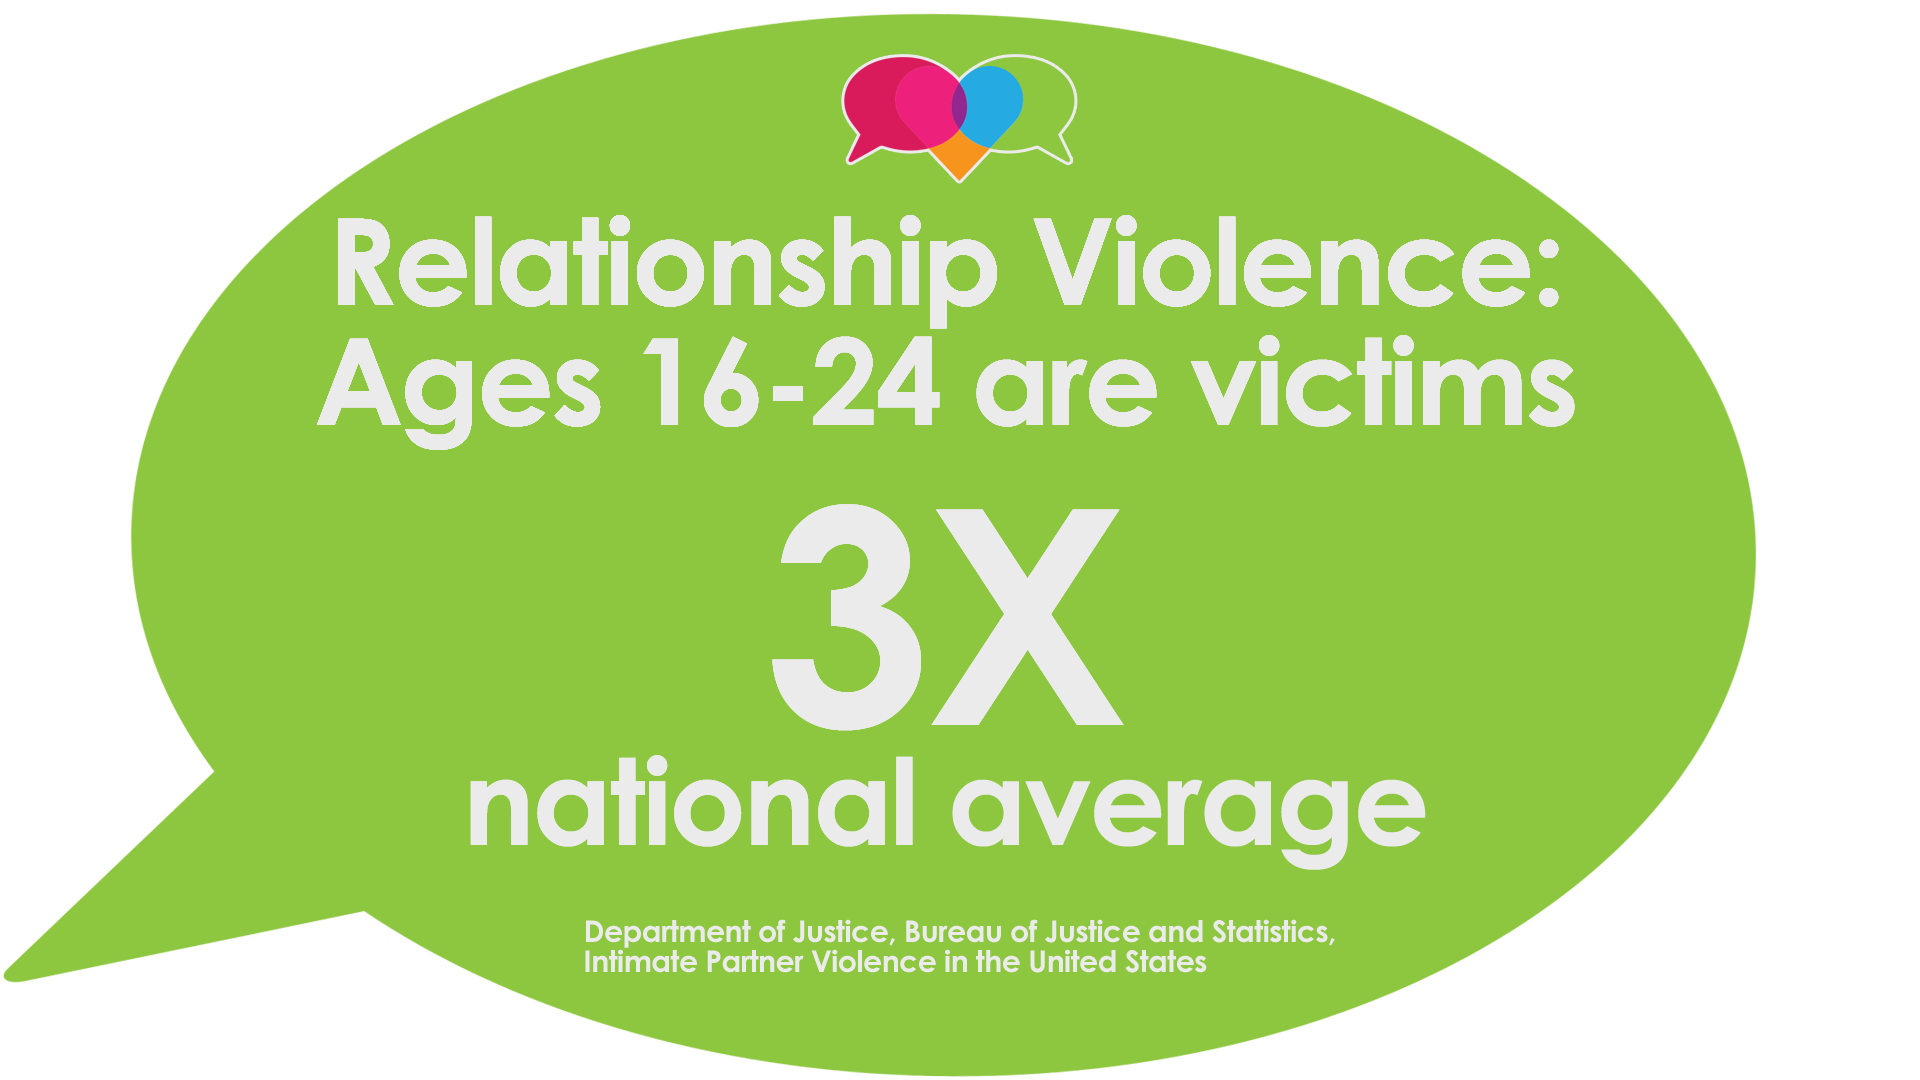 People age 16 - 24 are victims of domestic violence at a rate of  3 times the national average